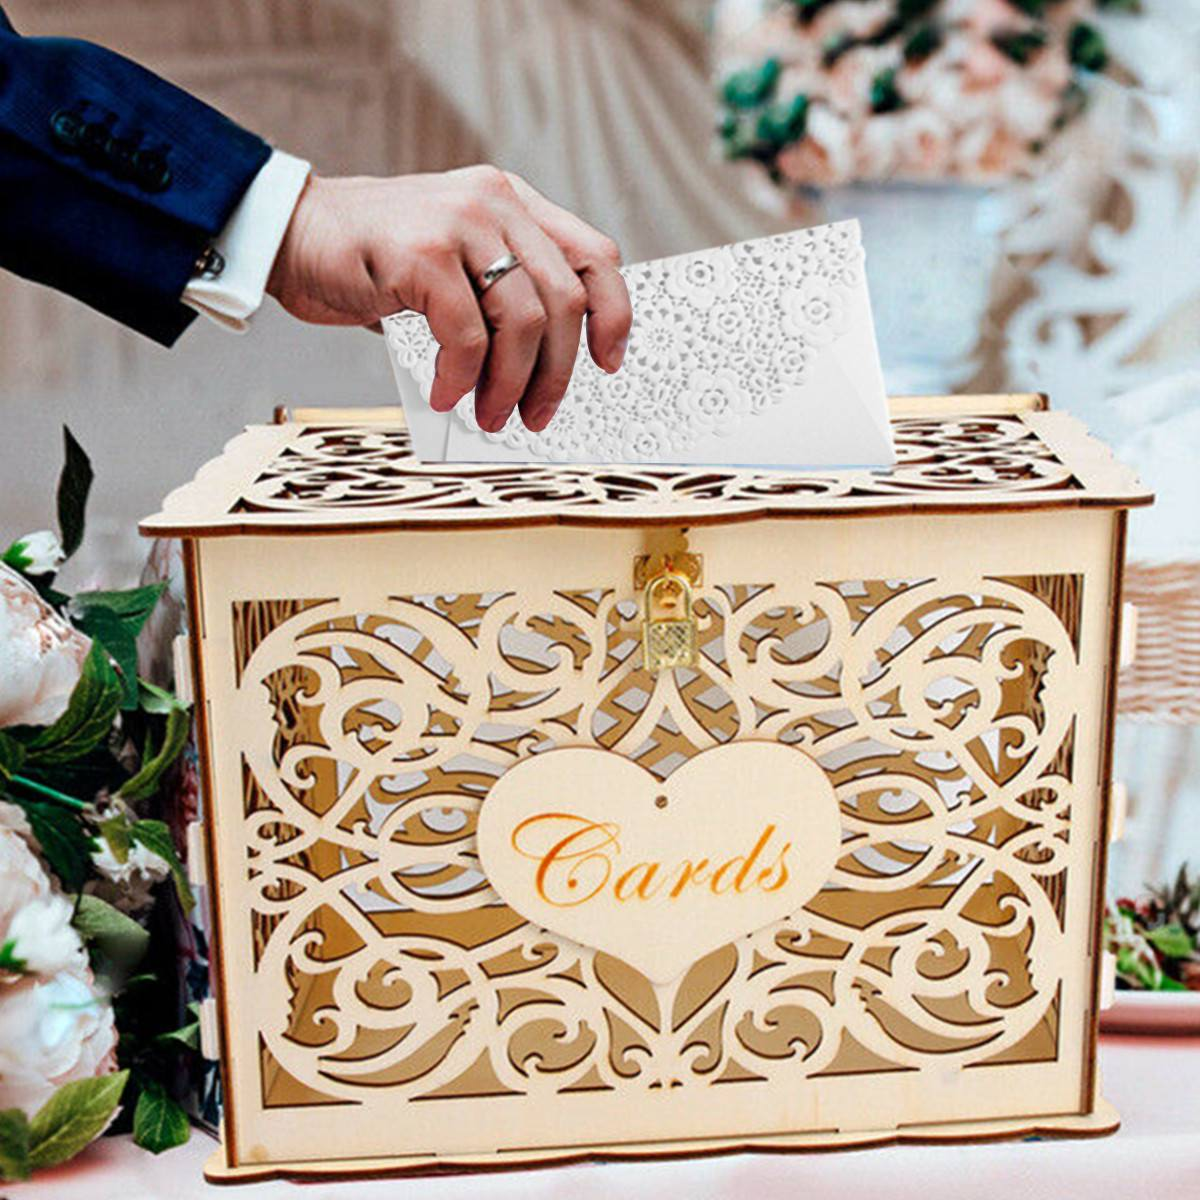 DIY Wedding Gift Card Box Wooden Money Box With Lock Beautiful Wedding Decoration Supplies For Birthday Party 30x21.5x24cmDIY Wedding Gift Card Box Wooden Money Box With Lock Beautiful Wedding Decoration Supplies For Birthday Party 30x21.5x24cm